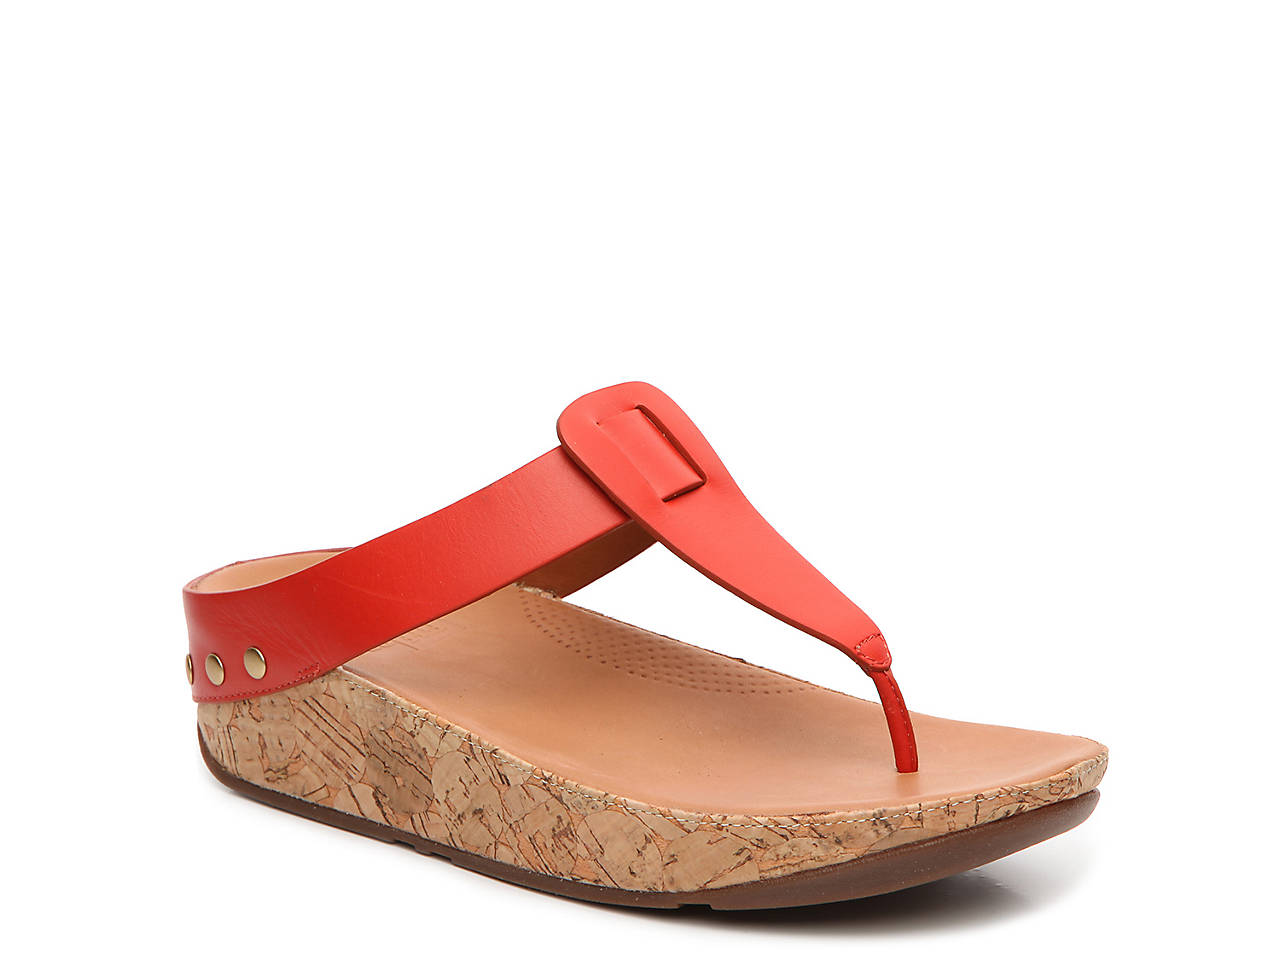 a919f2028 FitFlop Ibiza Wedge Sandal Women s Shoes